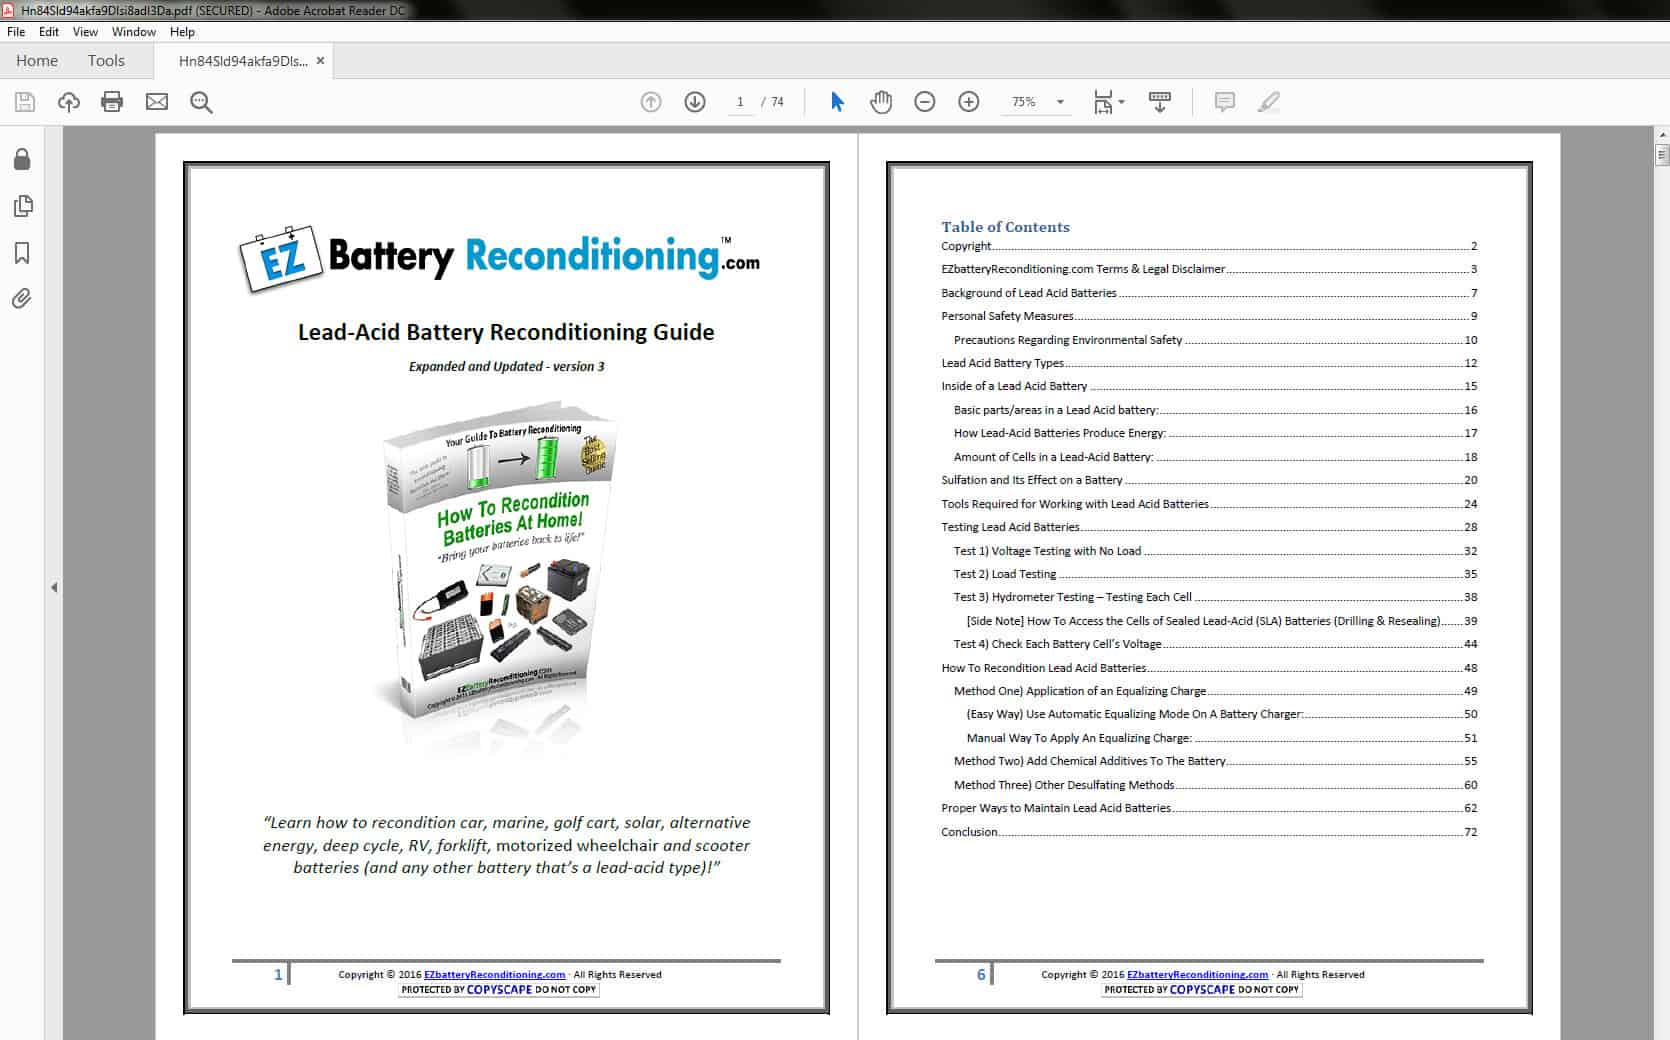 EZ Battery Reconditioning - Lead-Acid Battery - Table of Contents